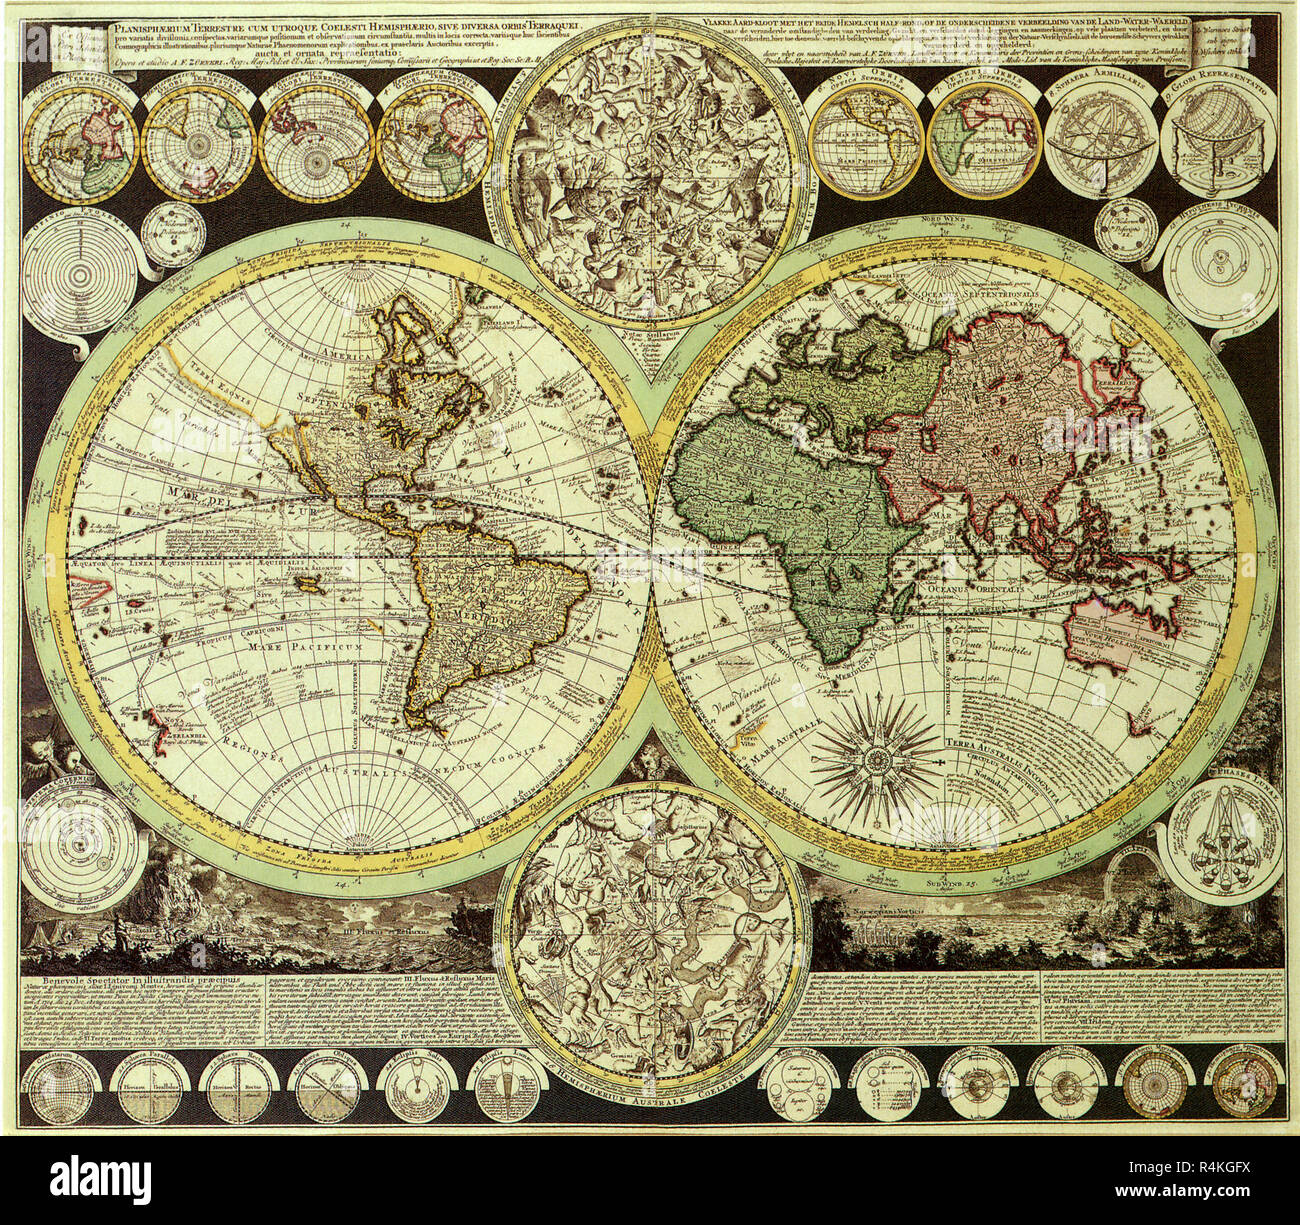 Map of the World 1700, Zumer, A.F Stock Photo: 226623486 - Alamy